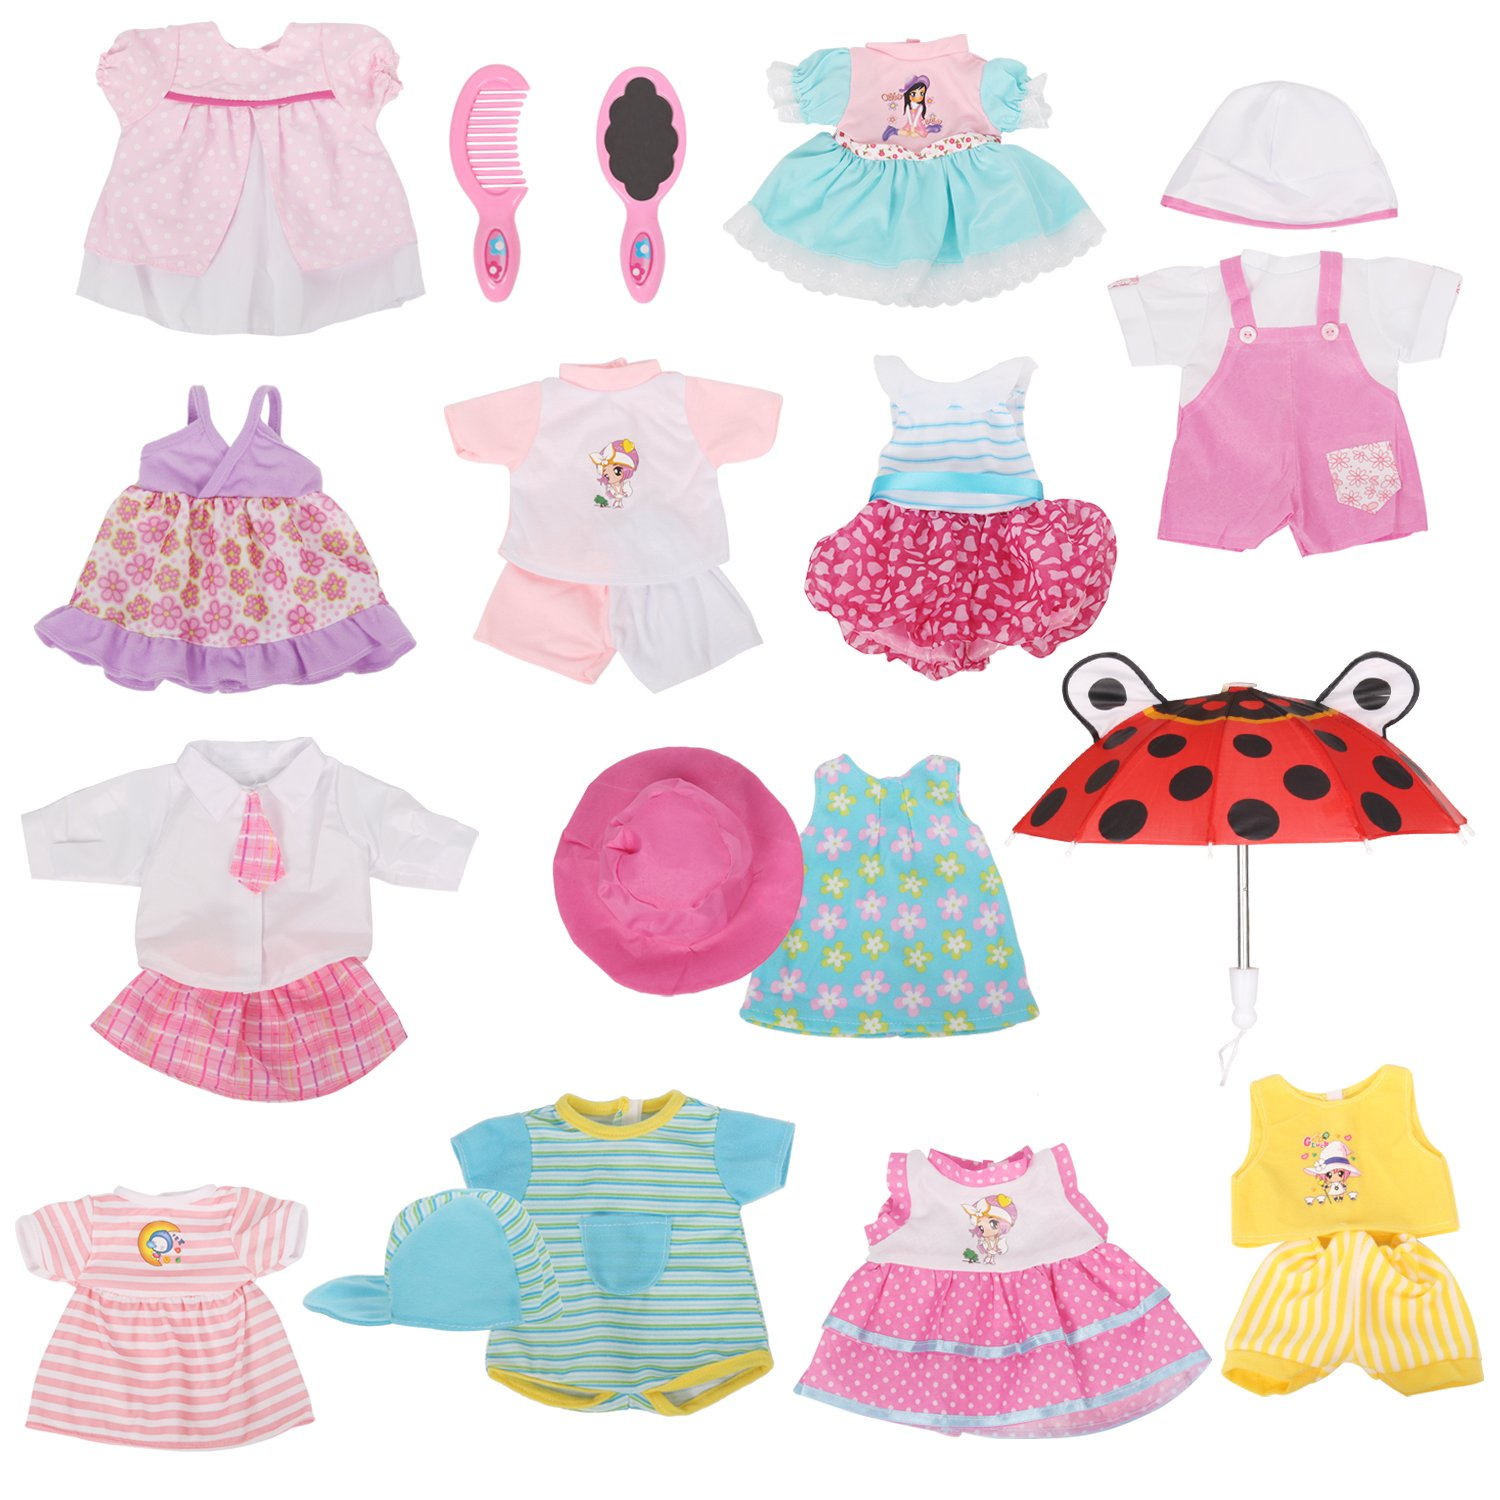 Huang Cheng Toys 12 Pcs Set Handmade Lovely Baby Doll Clothes Dress Outfits Costumes for 14 to 18-inch American Girl Cloth Hat Cap Umbrella Mirror Comb Girl Christmas Birthday Gift for Little Girl by Huang Cheng Toys